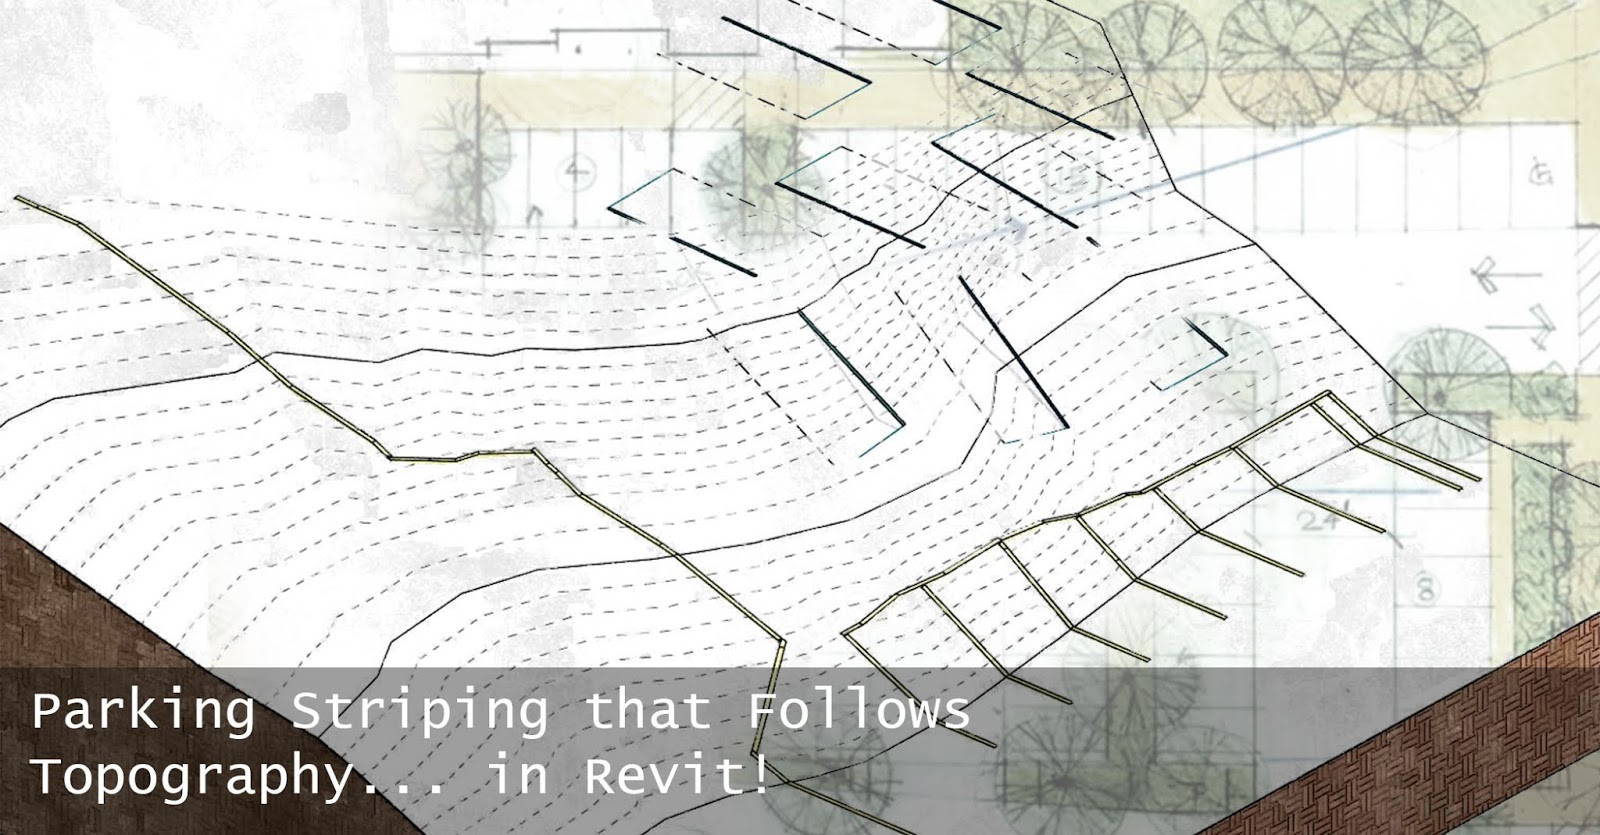 Revit Tutorial - Parking Striping the Follows Topography